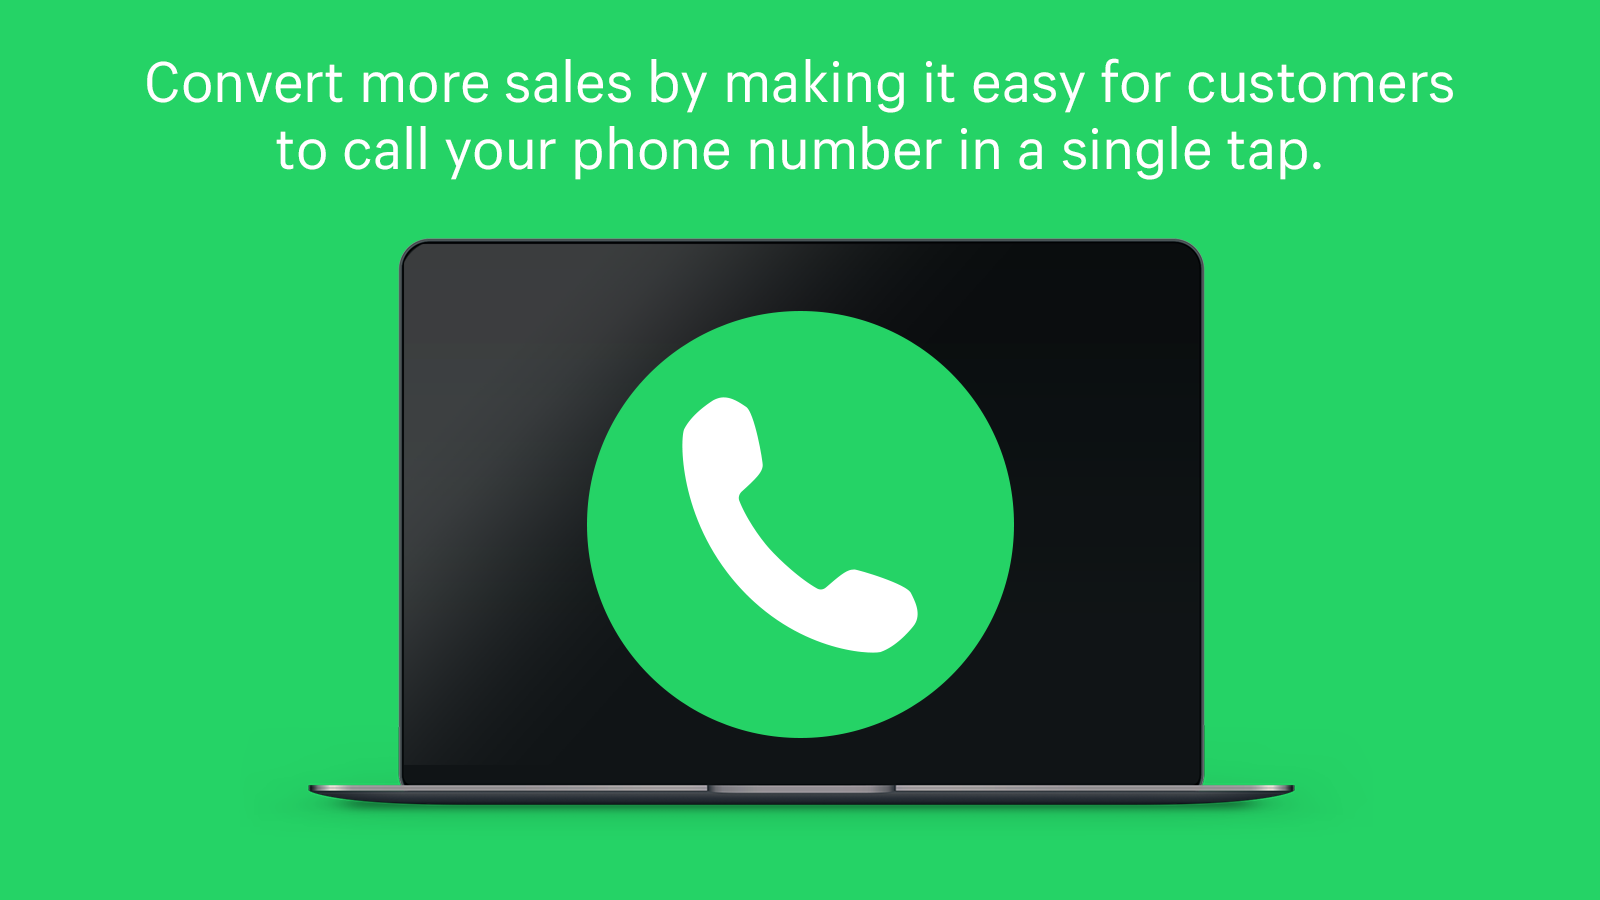 Convert more sales by making it easy to call you